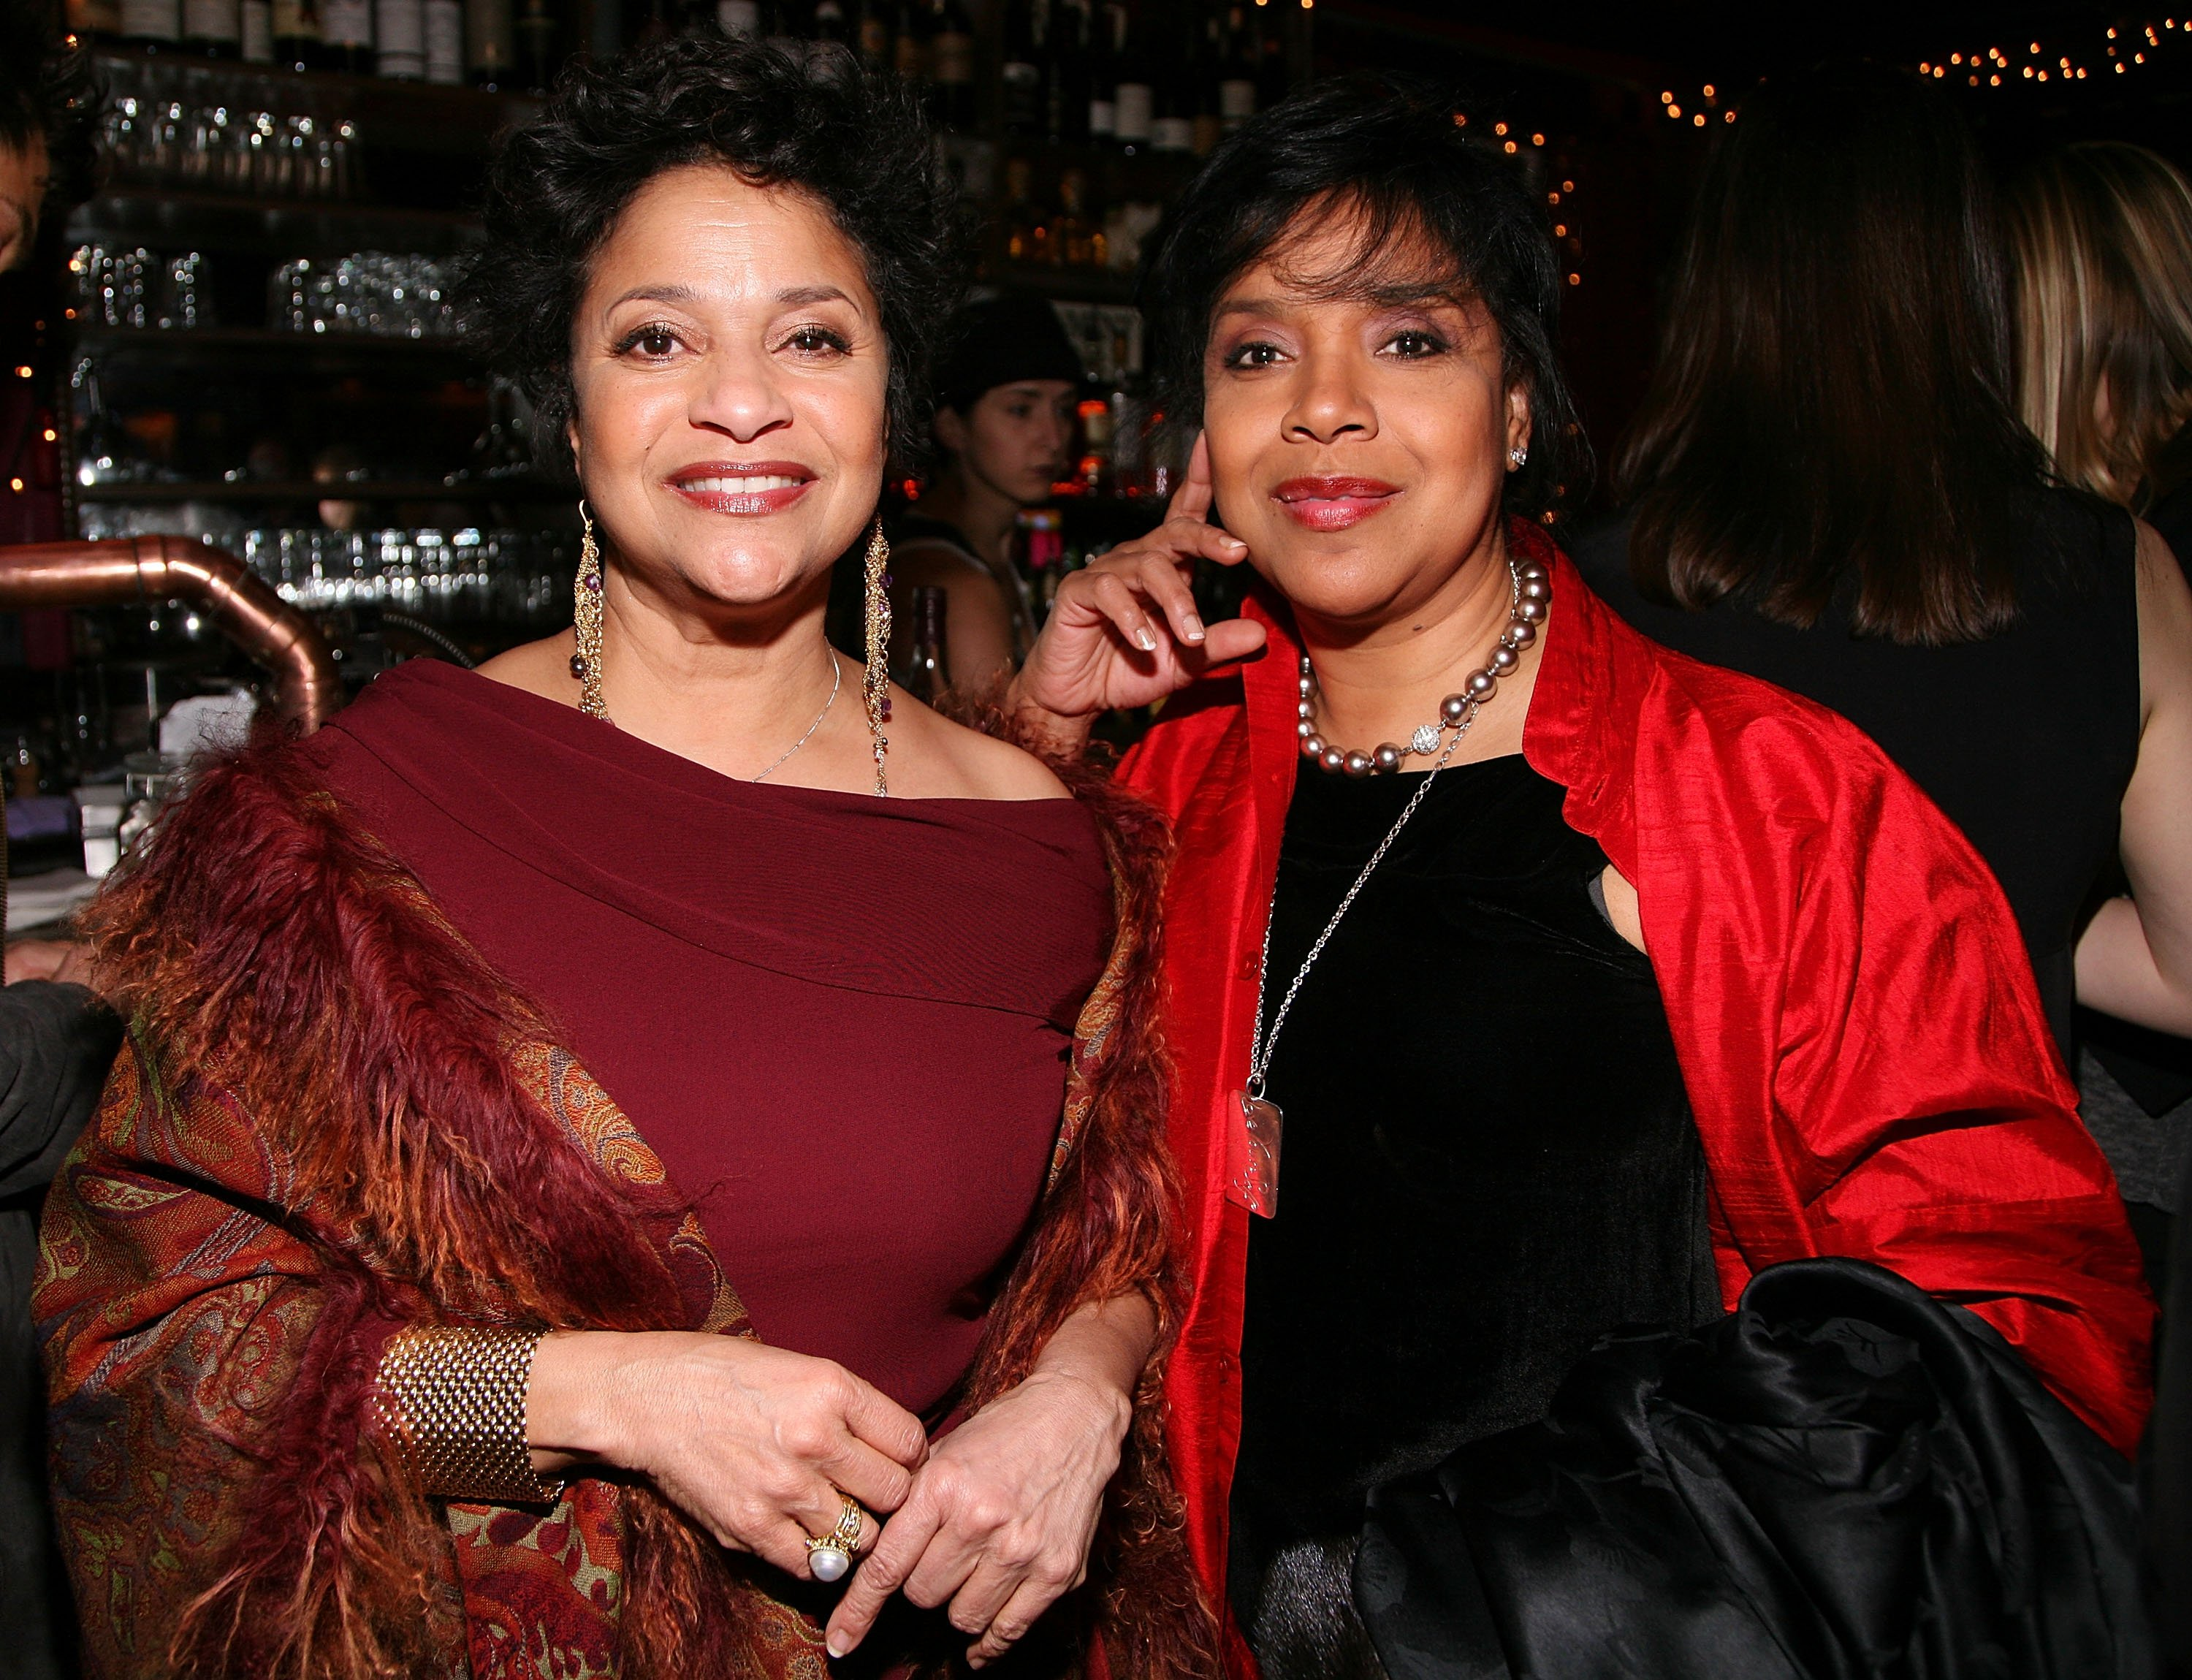 Debbie Allen and Phylicia Rashad at the New York Magazine Oscar Viewing Party on February 24, 2008 in New York City. | Source: Getty Images